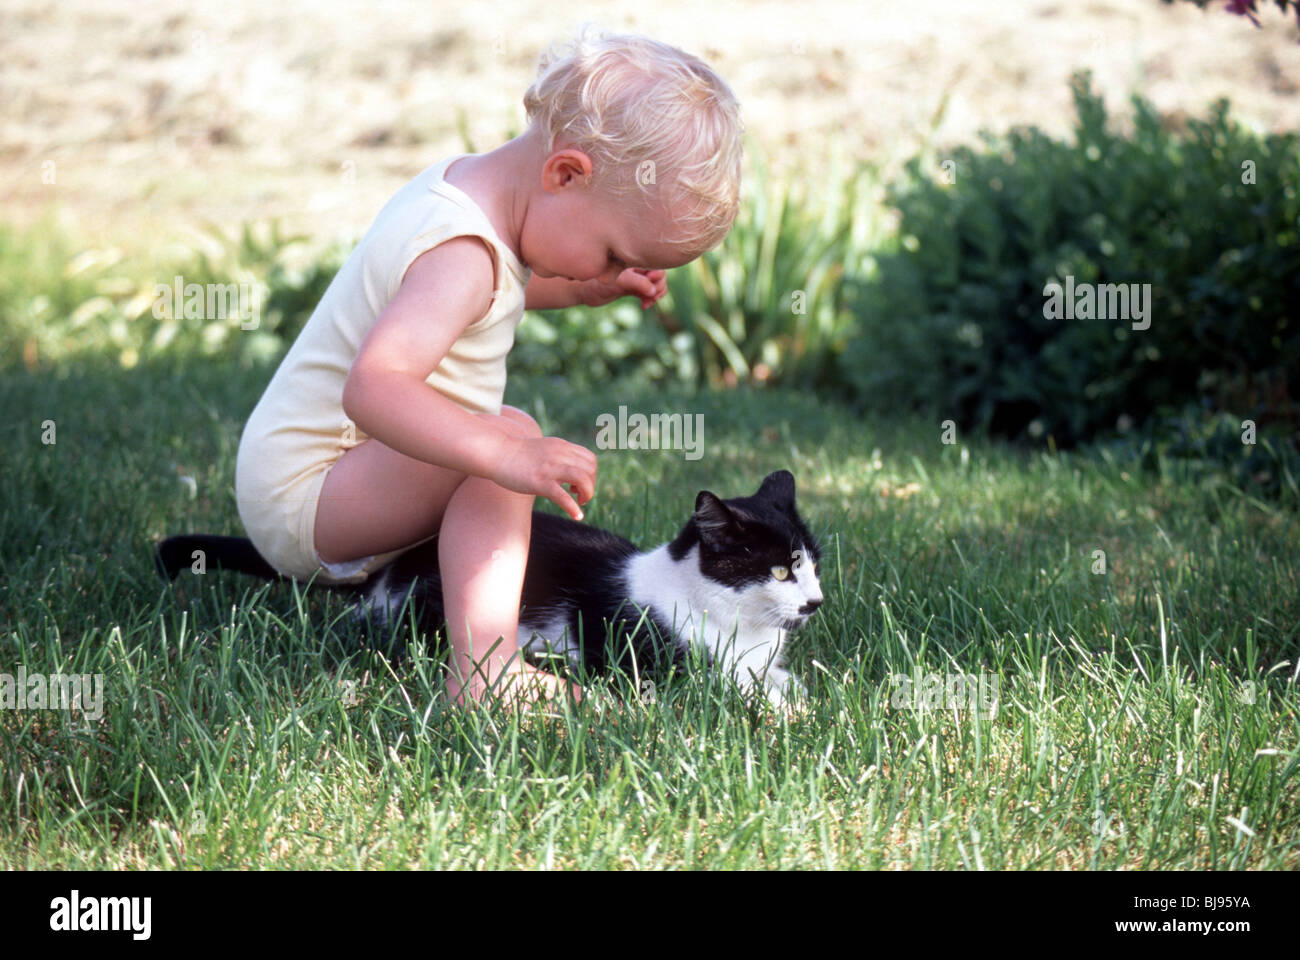 Child playing rough with pet cat outdoors in back yard  - SerieCVS100008247 - Stock Image